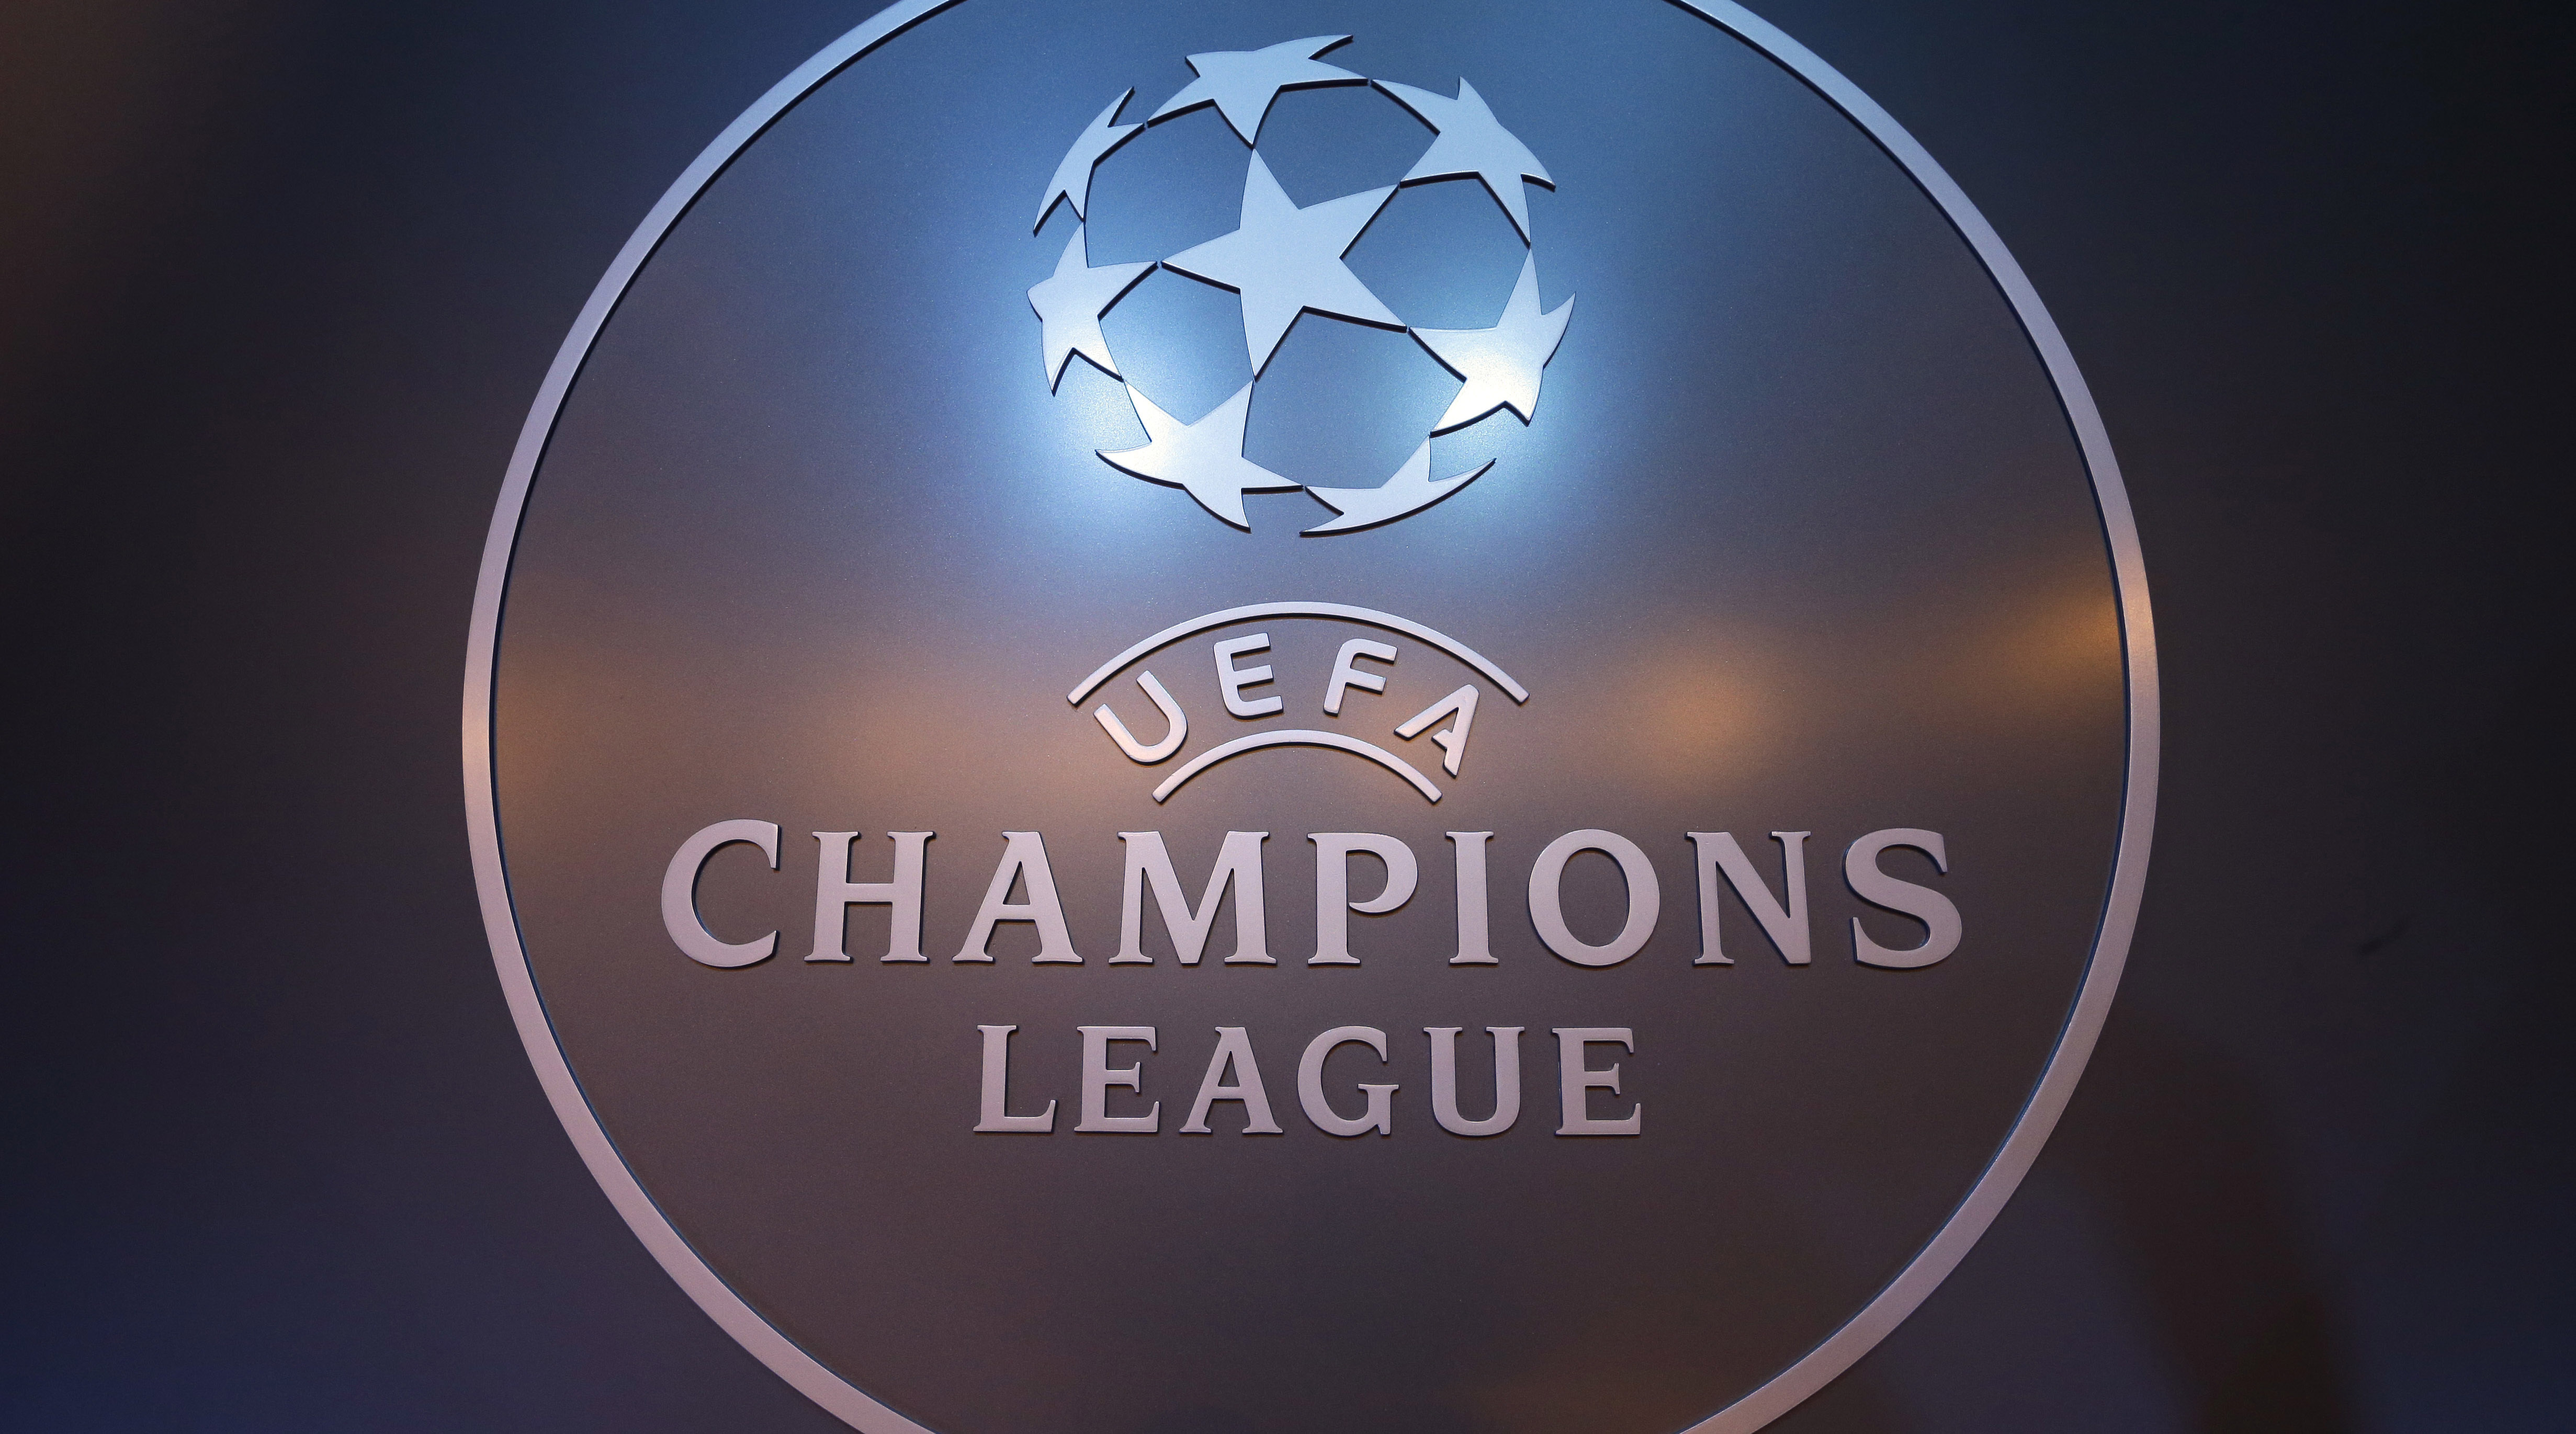 Betsson is ready for Champions League